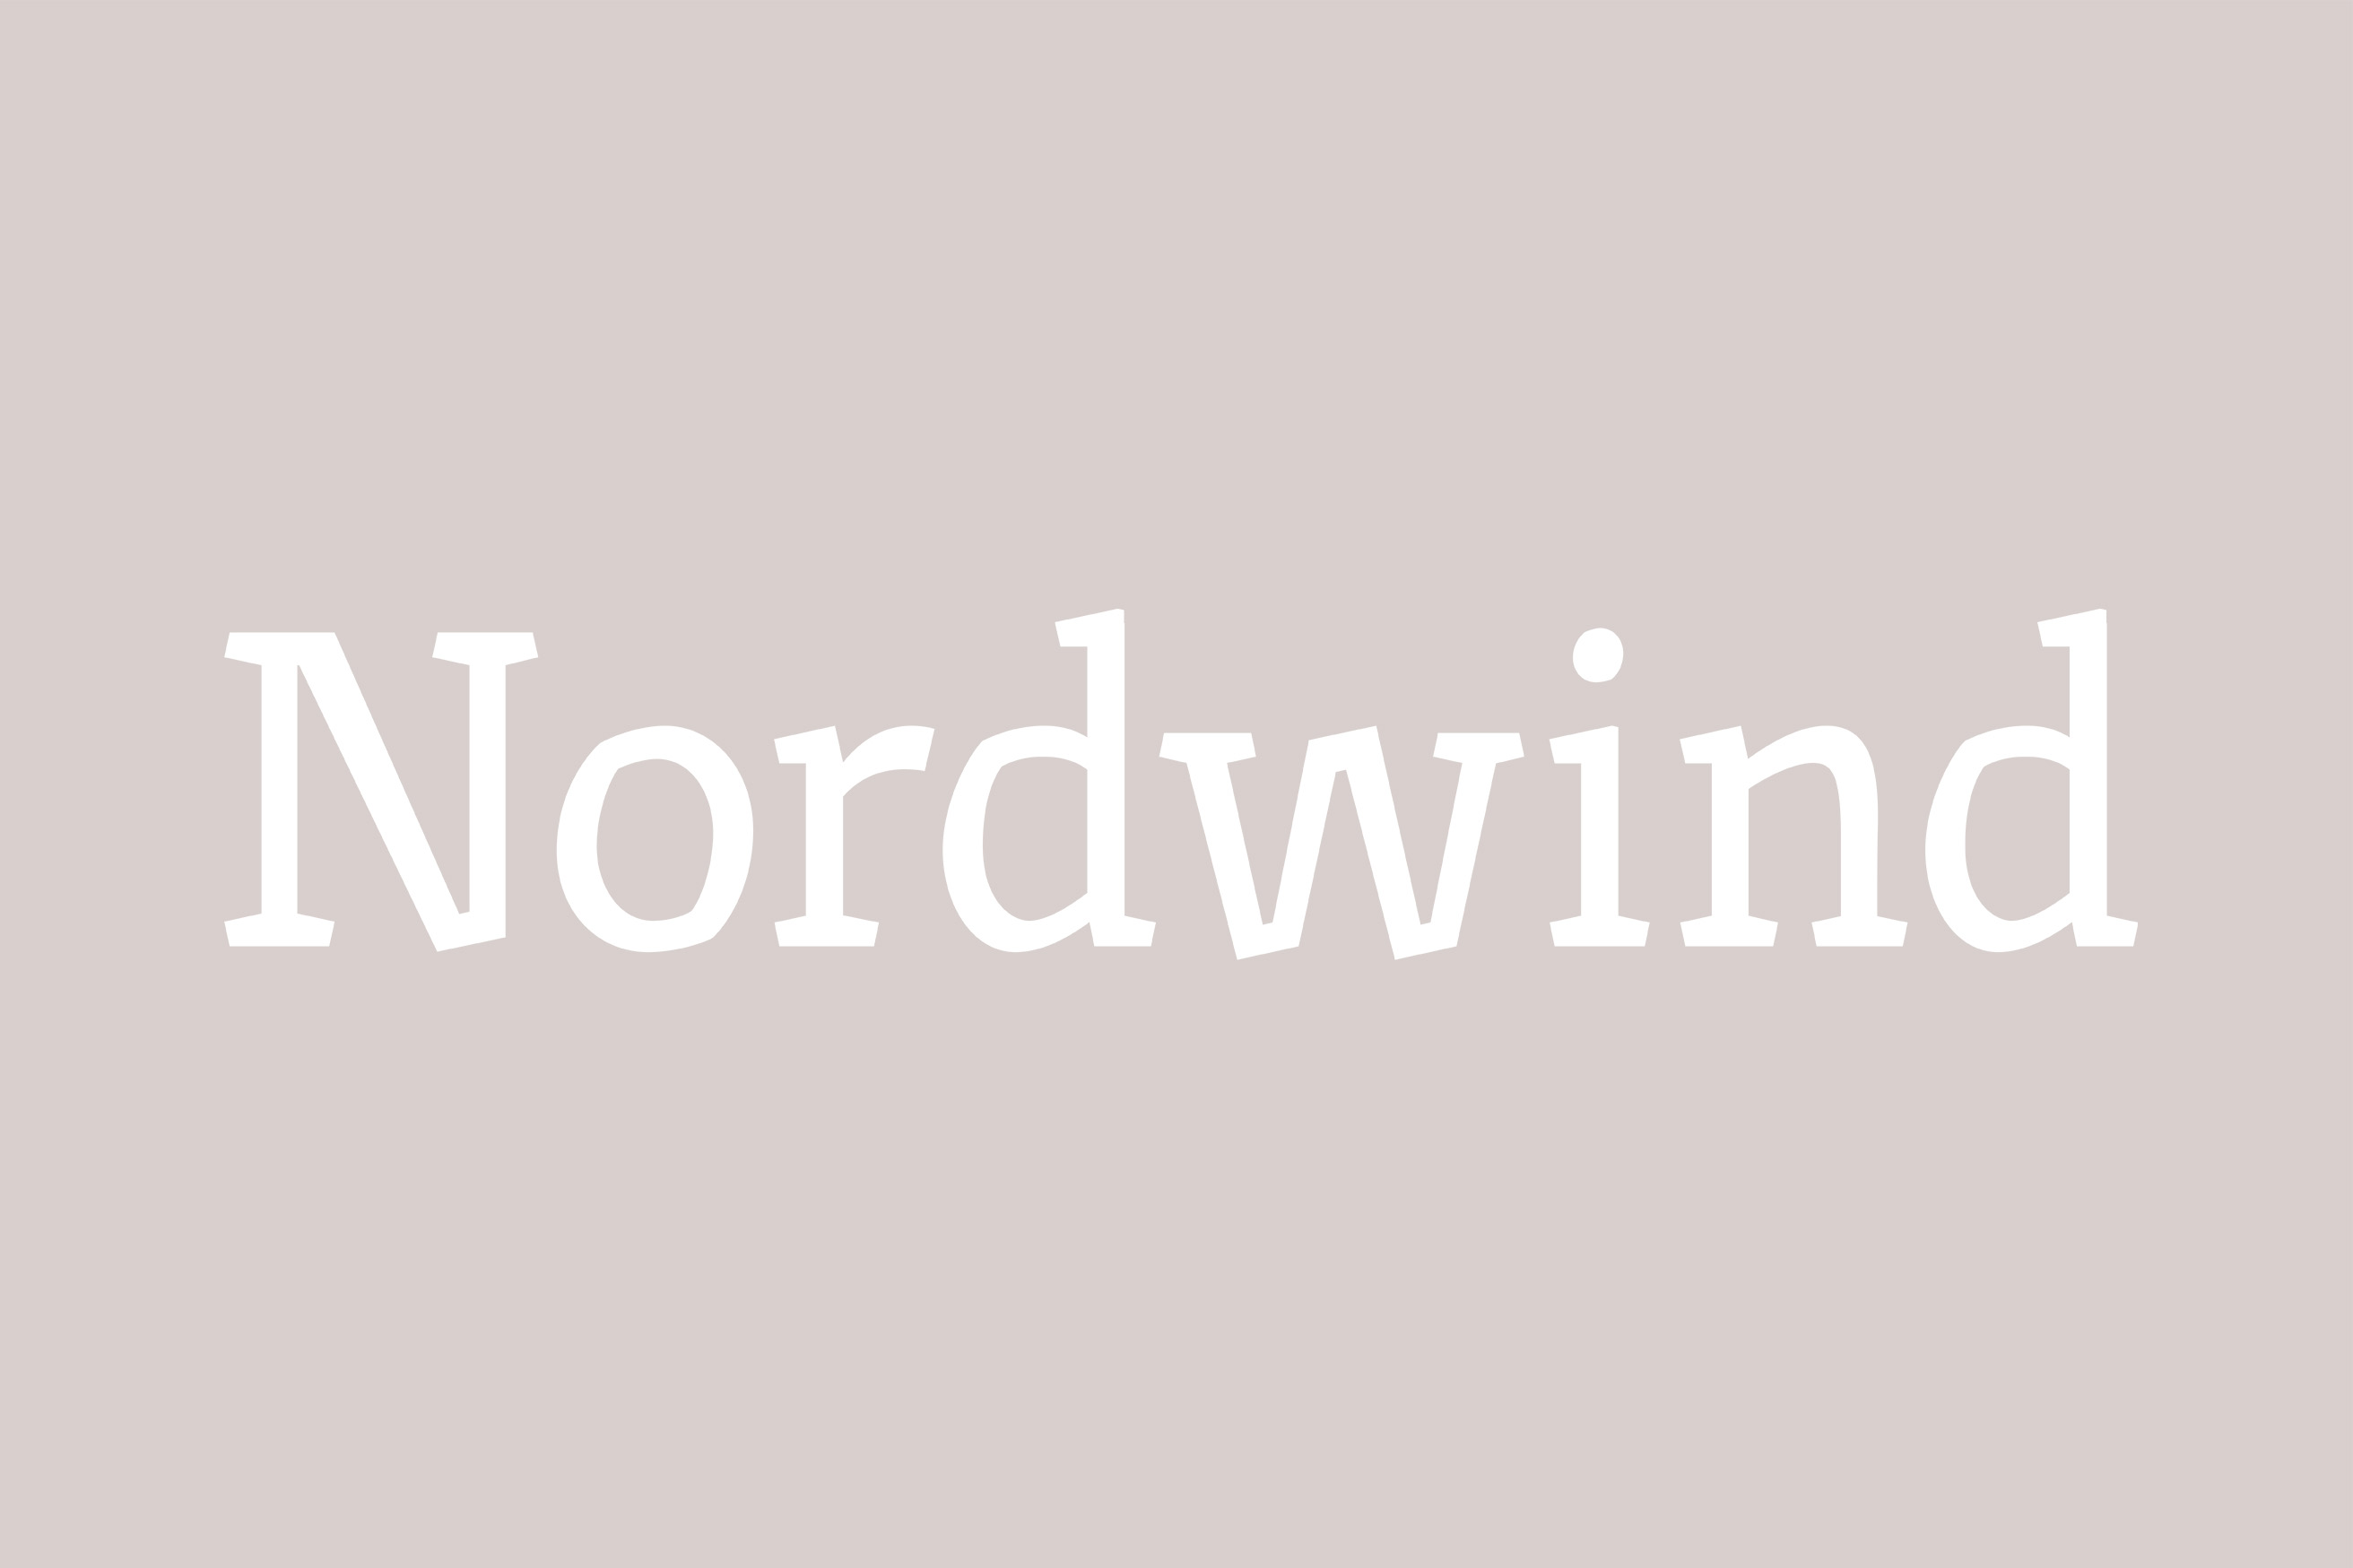 Nordwind typeface